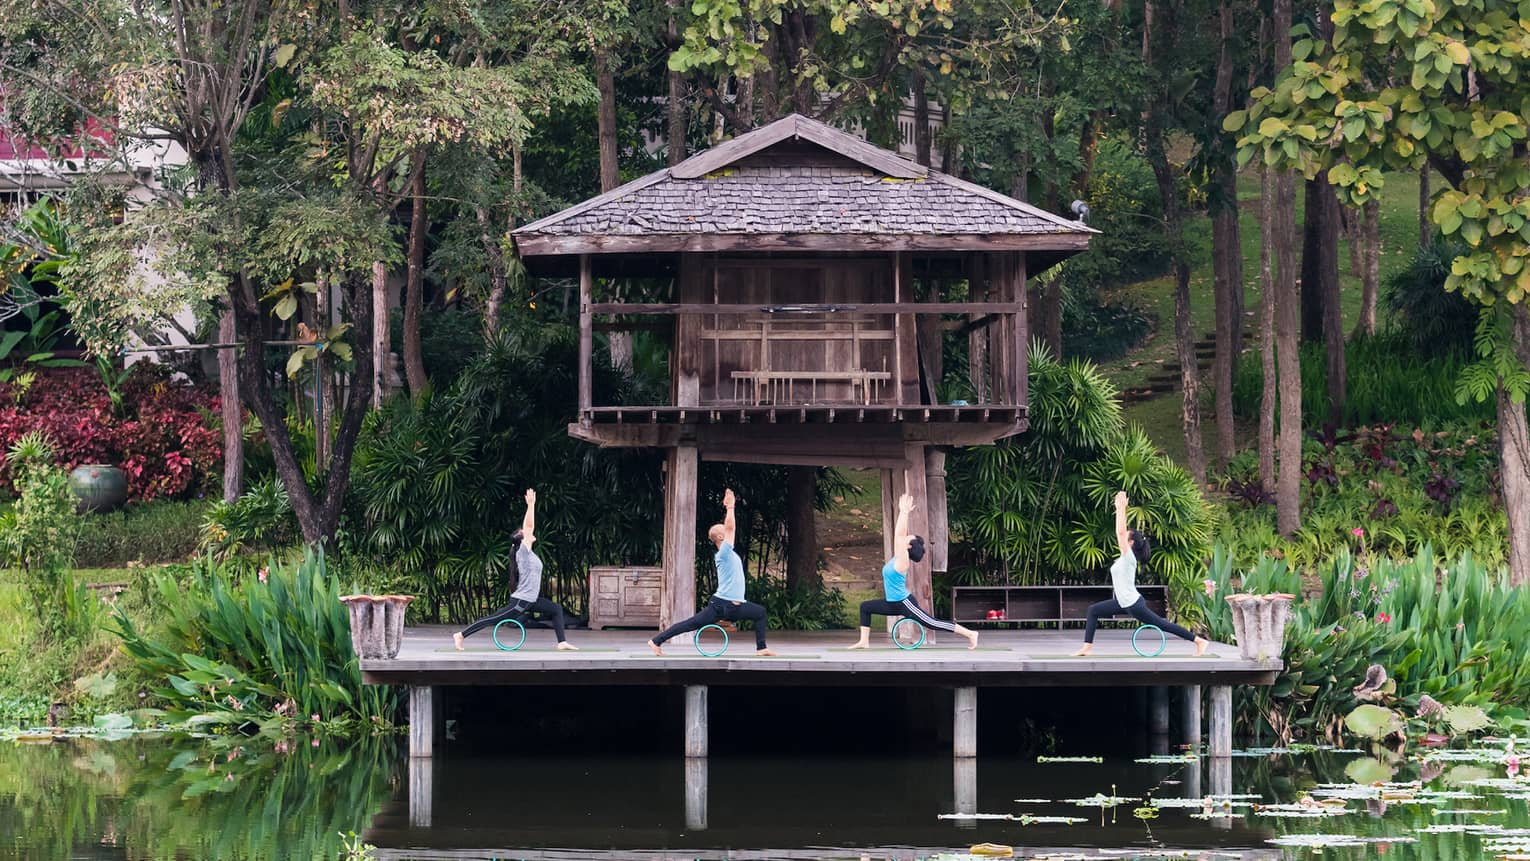 Four people doing yoga on a deck overlooking a calm pond, in front of a wooden bungalow and jungle trees